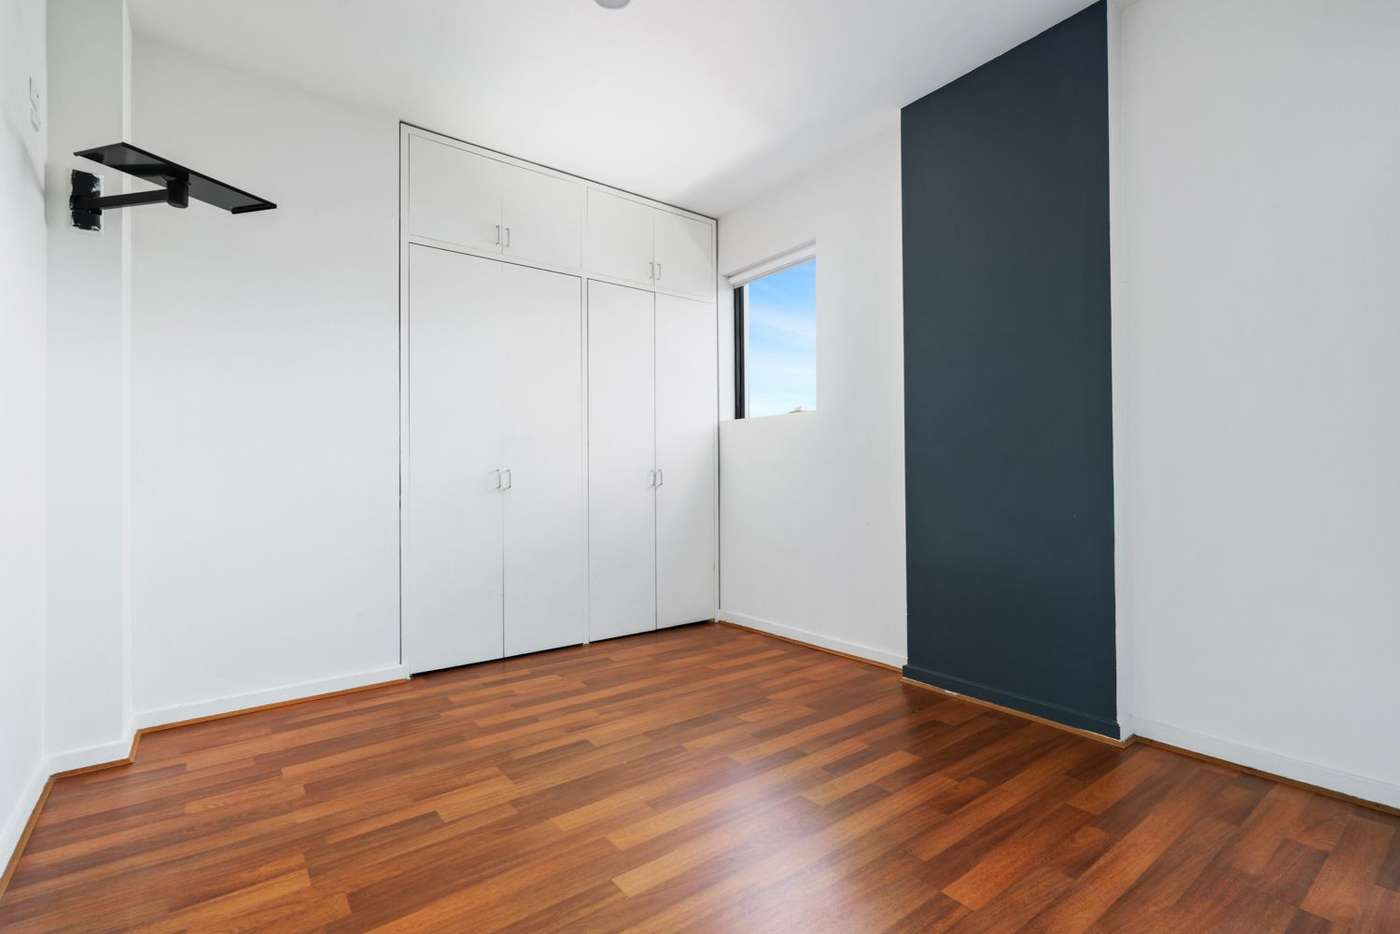 Sixth view of Homely apartment listing, 2/1-9 Little Leveson Street, North Melbourne VIC 3051